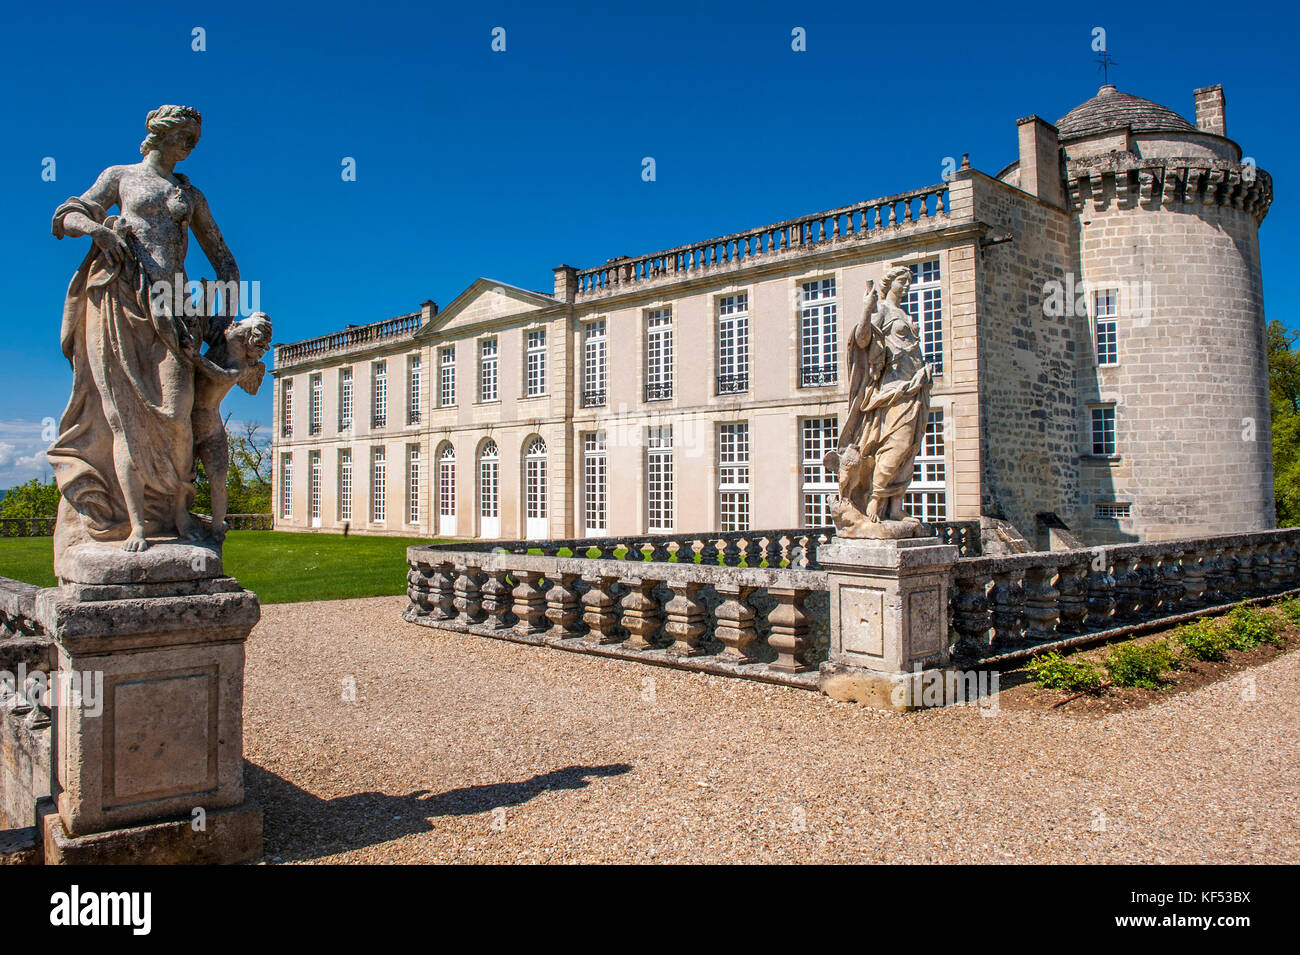 saint emilion statue stock photos saint emilion statue. Black Bedroom Furniture Sets. Home Design Ideas